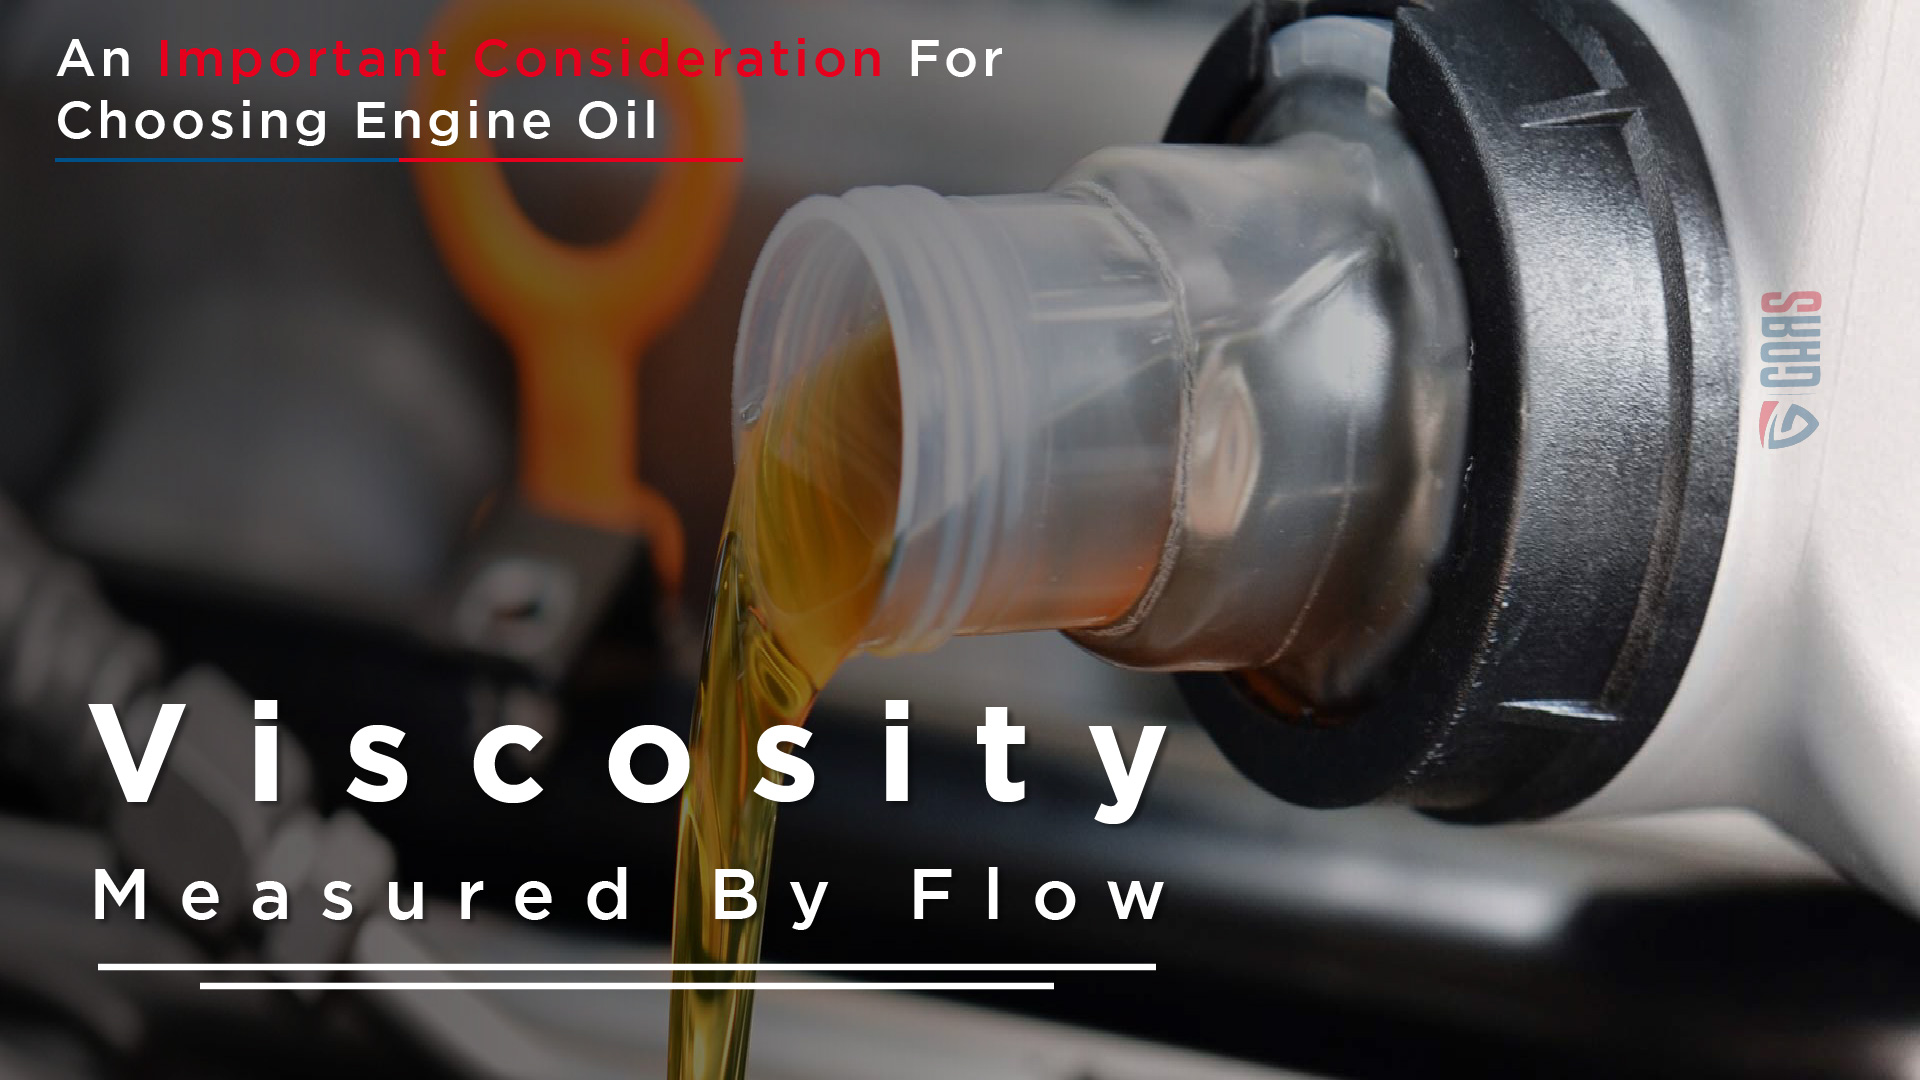 The Importance Of Viscosity For Engine Oil